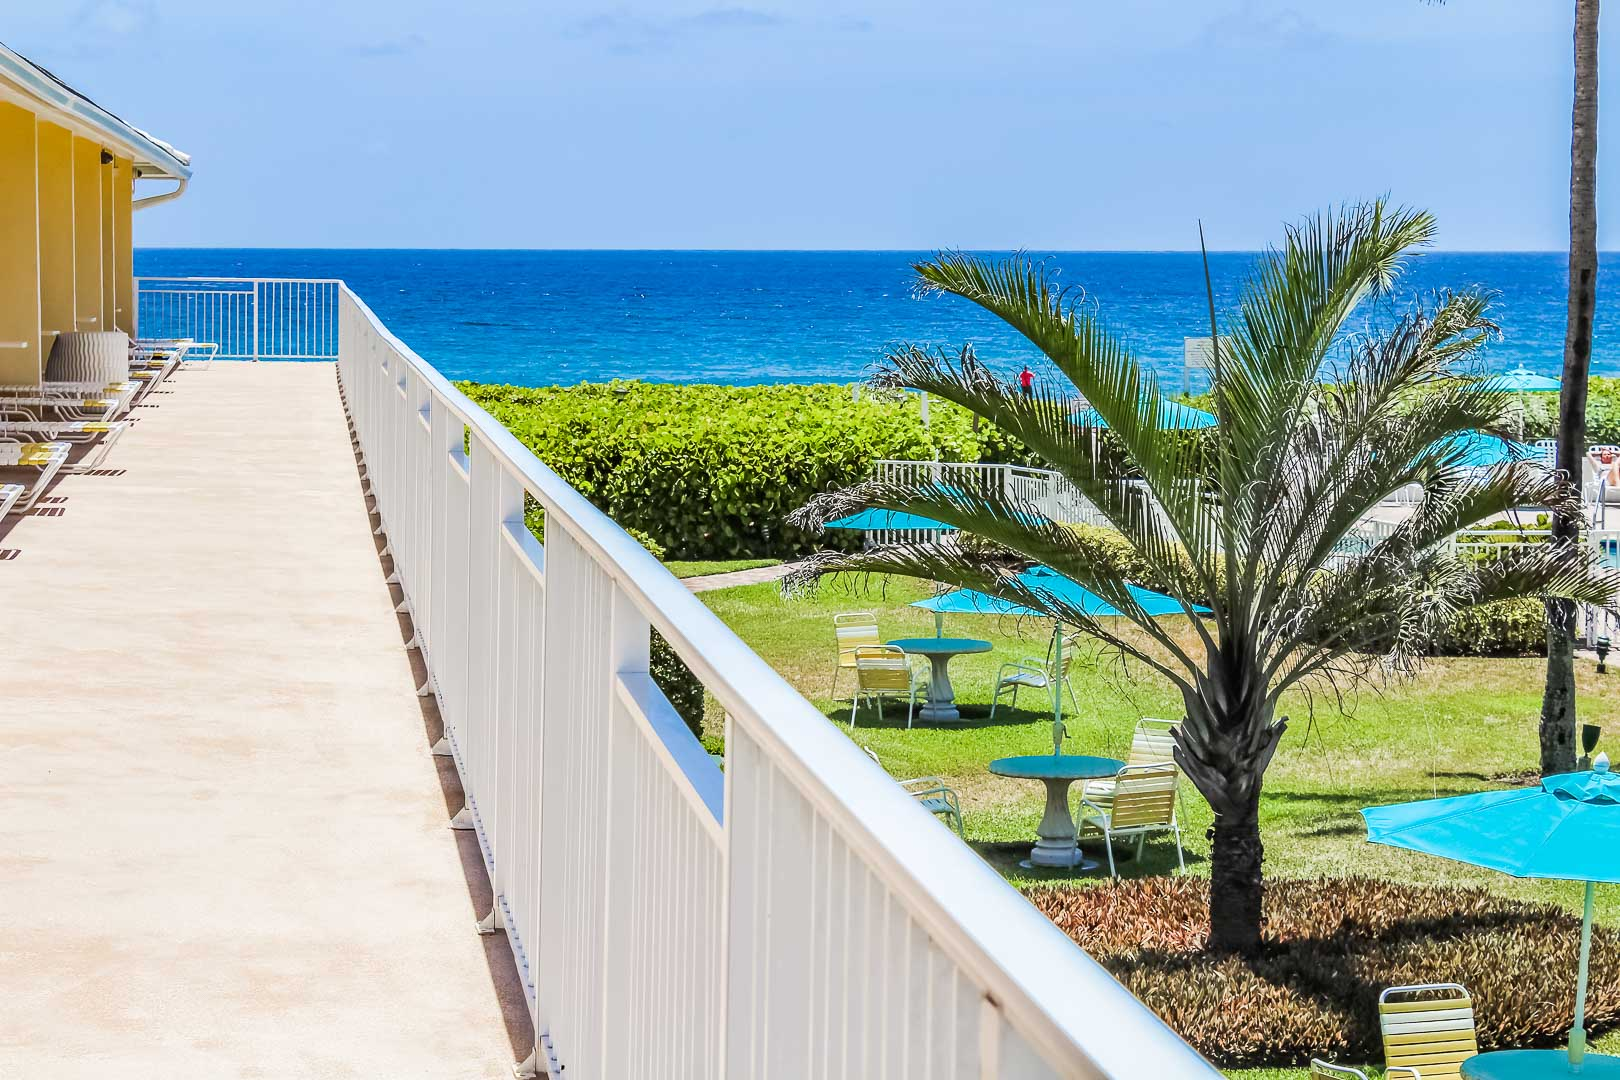 A scenic ocean view at VRI's Berkshire on the Ocean in Florida.